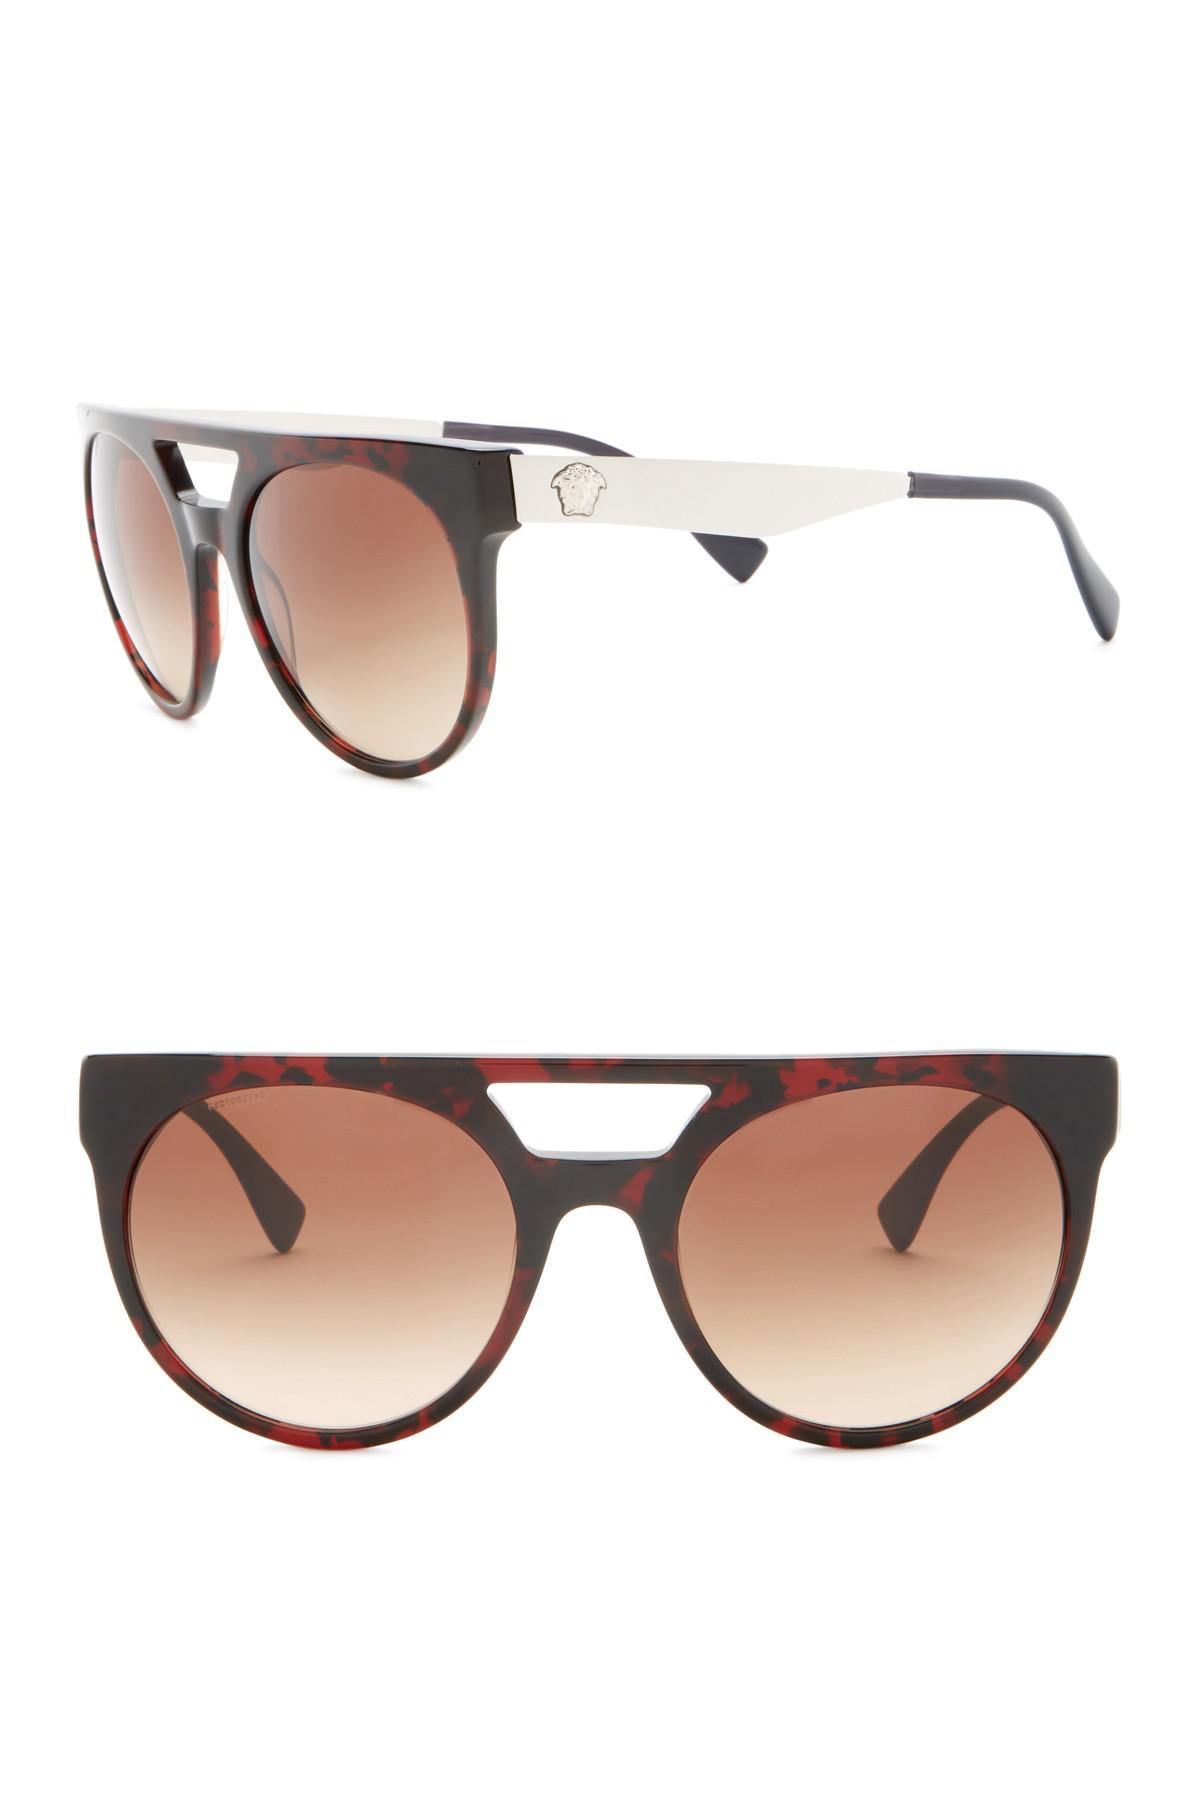 751e4eaa8cad2 Lyst - Versace 55mm Round Sunglasses in Brown